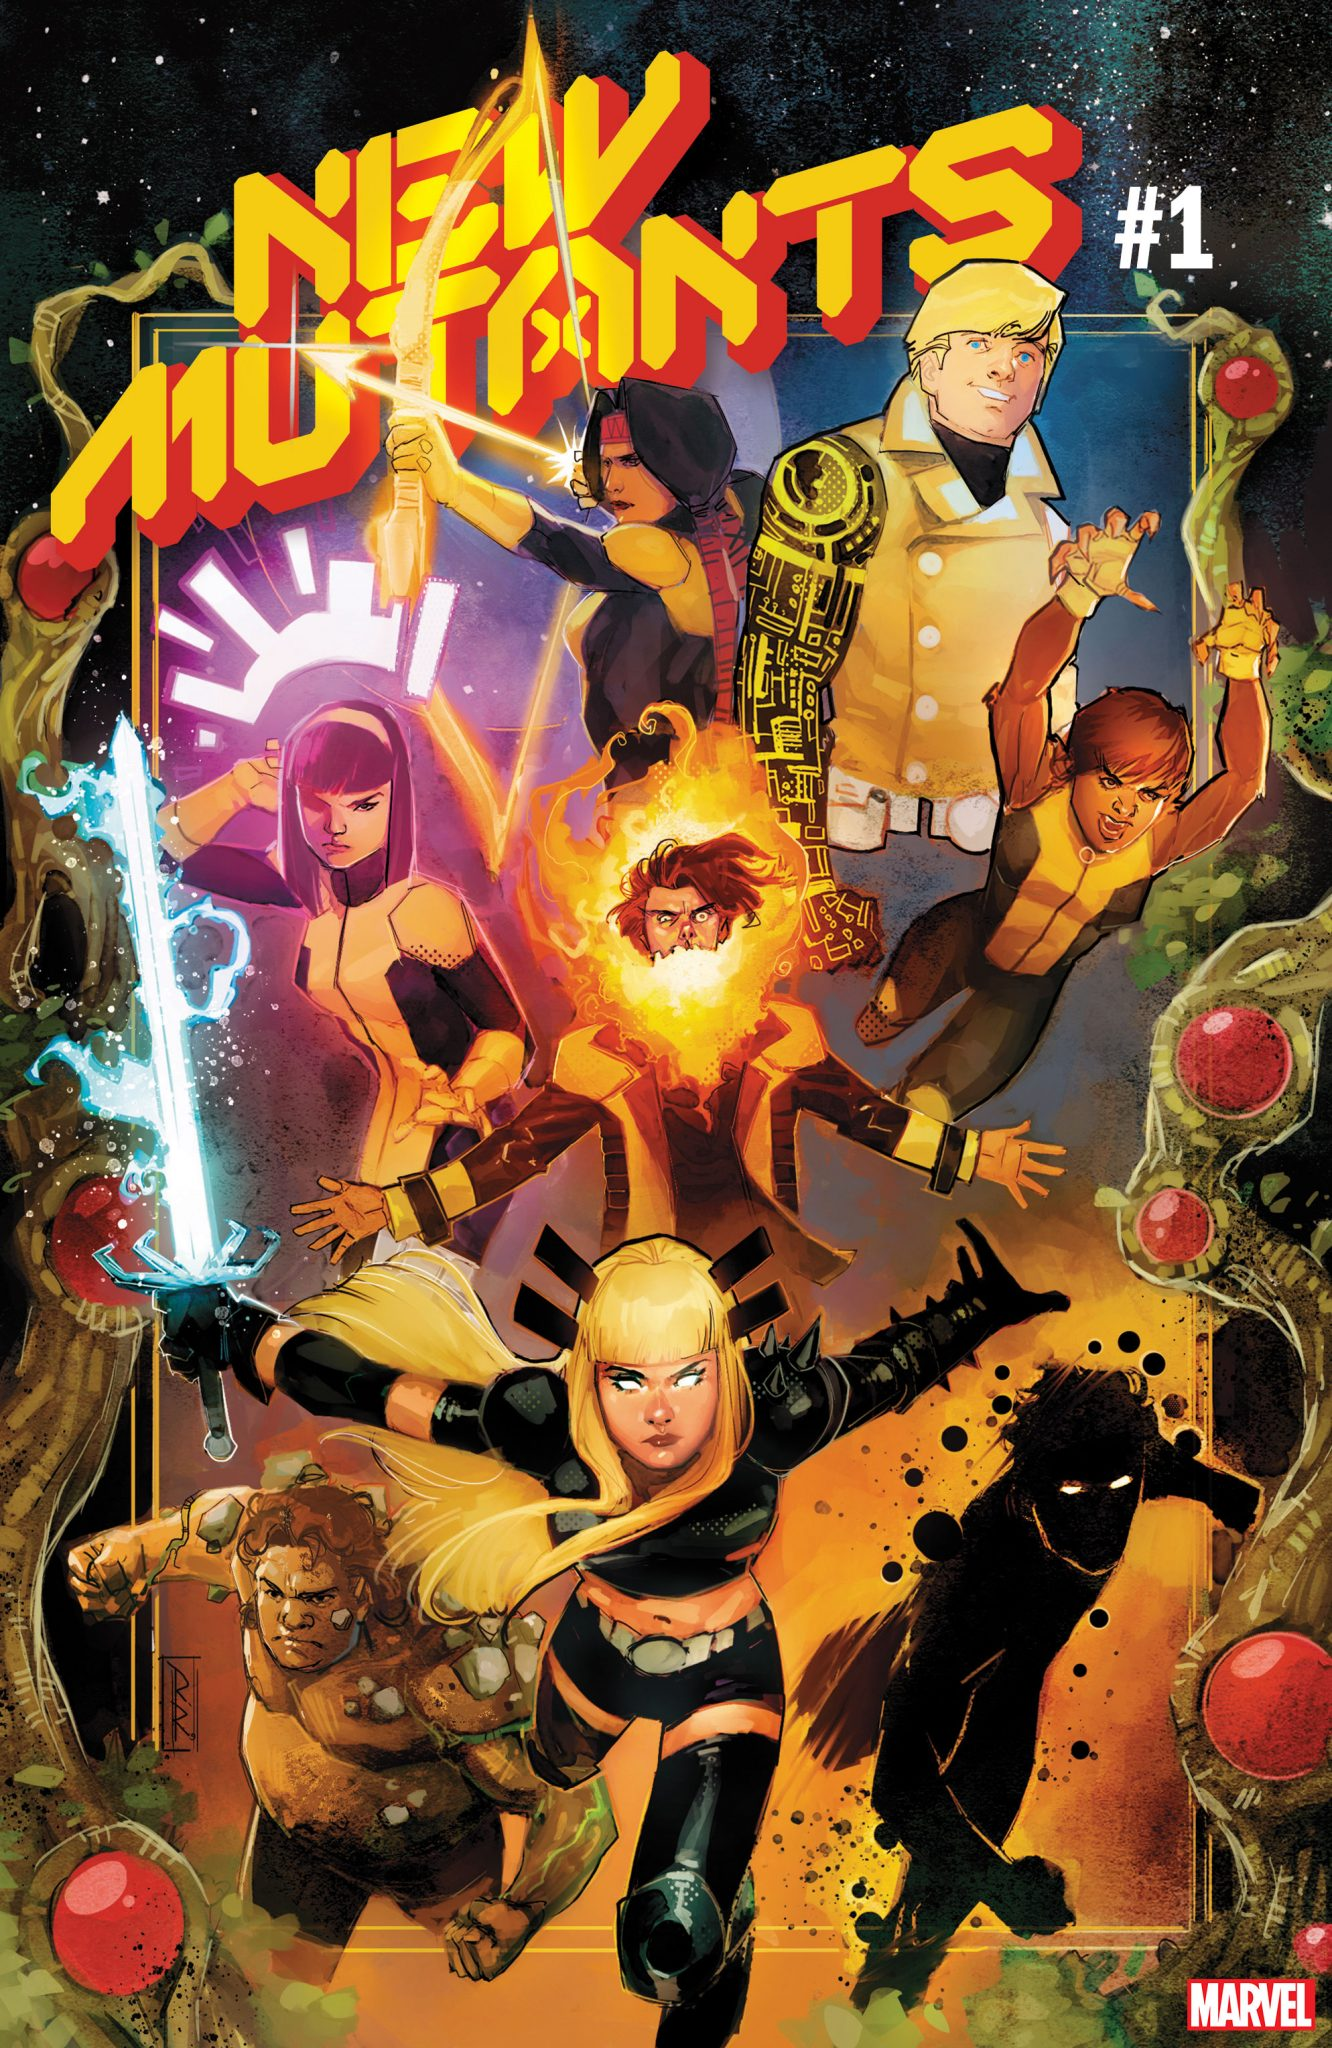 Marvel Comics na SDCC 2019 - X-Men - New Mutants #1 - Novos Mutantes - Blog Farofeiros